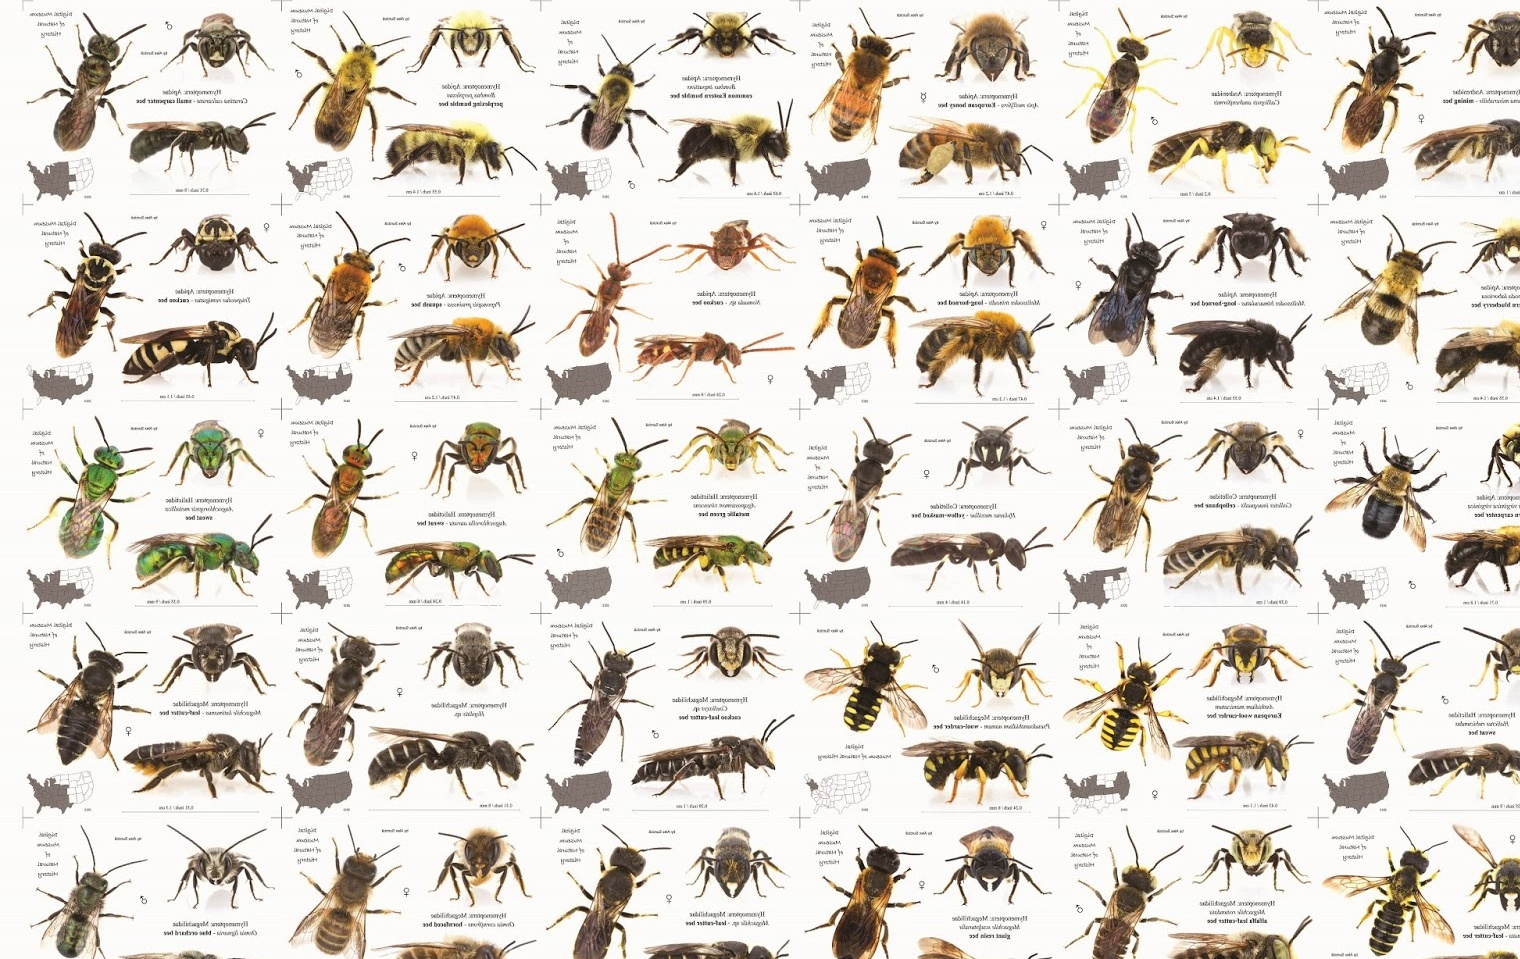 Types of Honey Bees Pictures on Animal Picture Society - photo#3